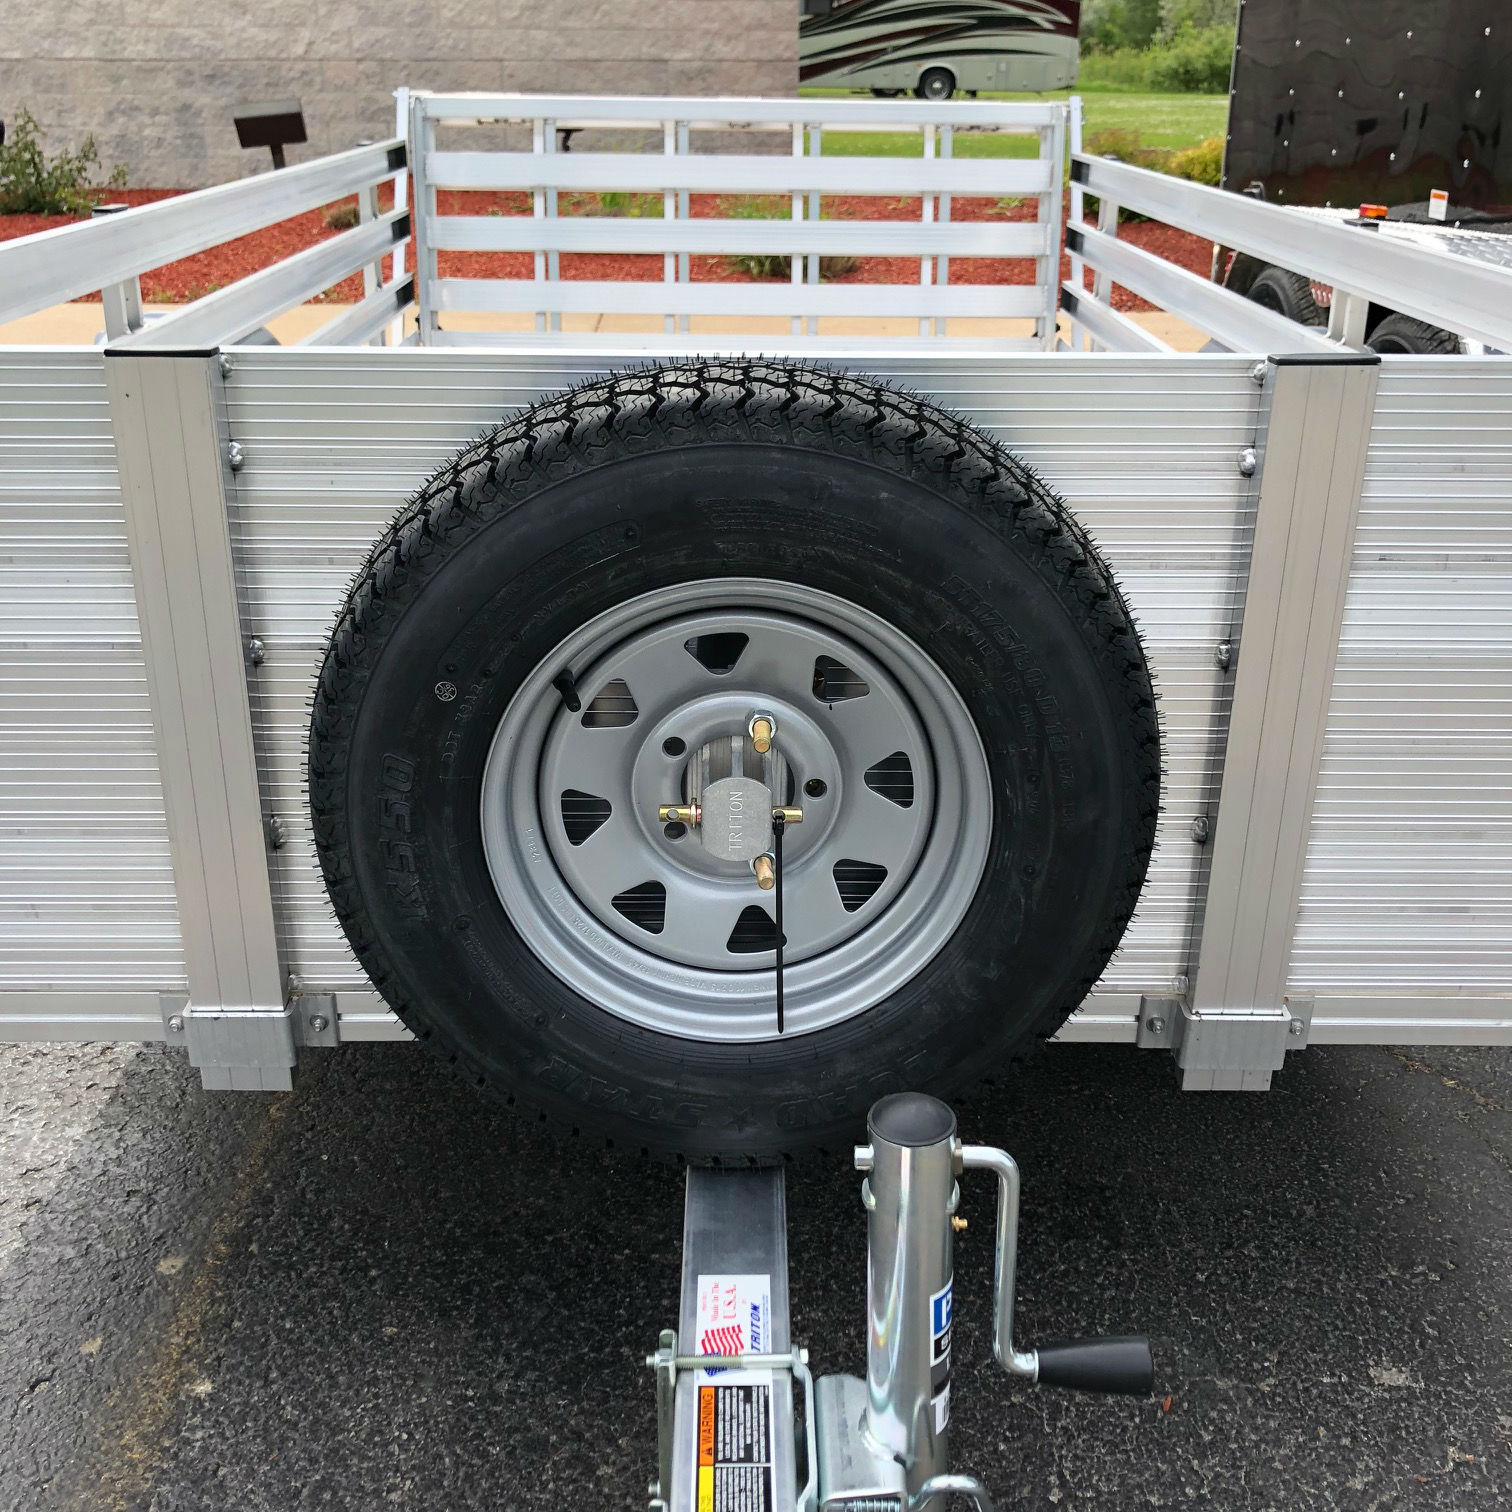 Car Trailers For Sale: Triton 11830 UT Series Utility Trailer Spare Tire Carrier